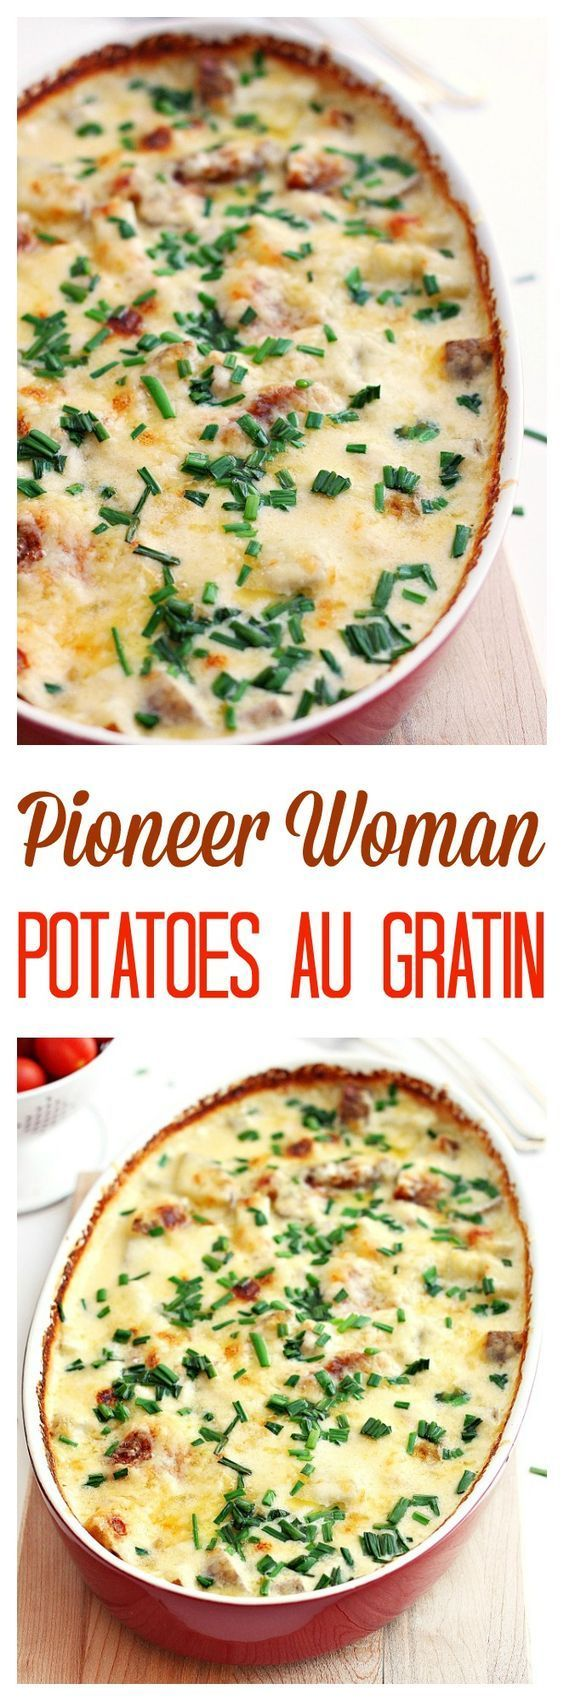 Pioneer Womans potatoes au gratin